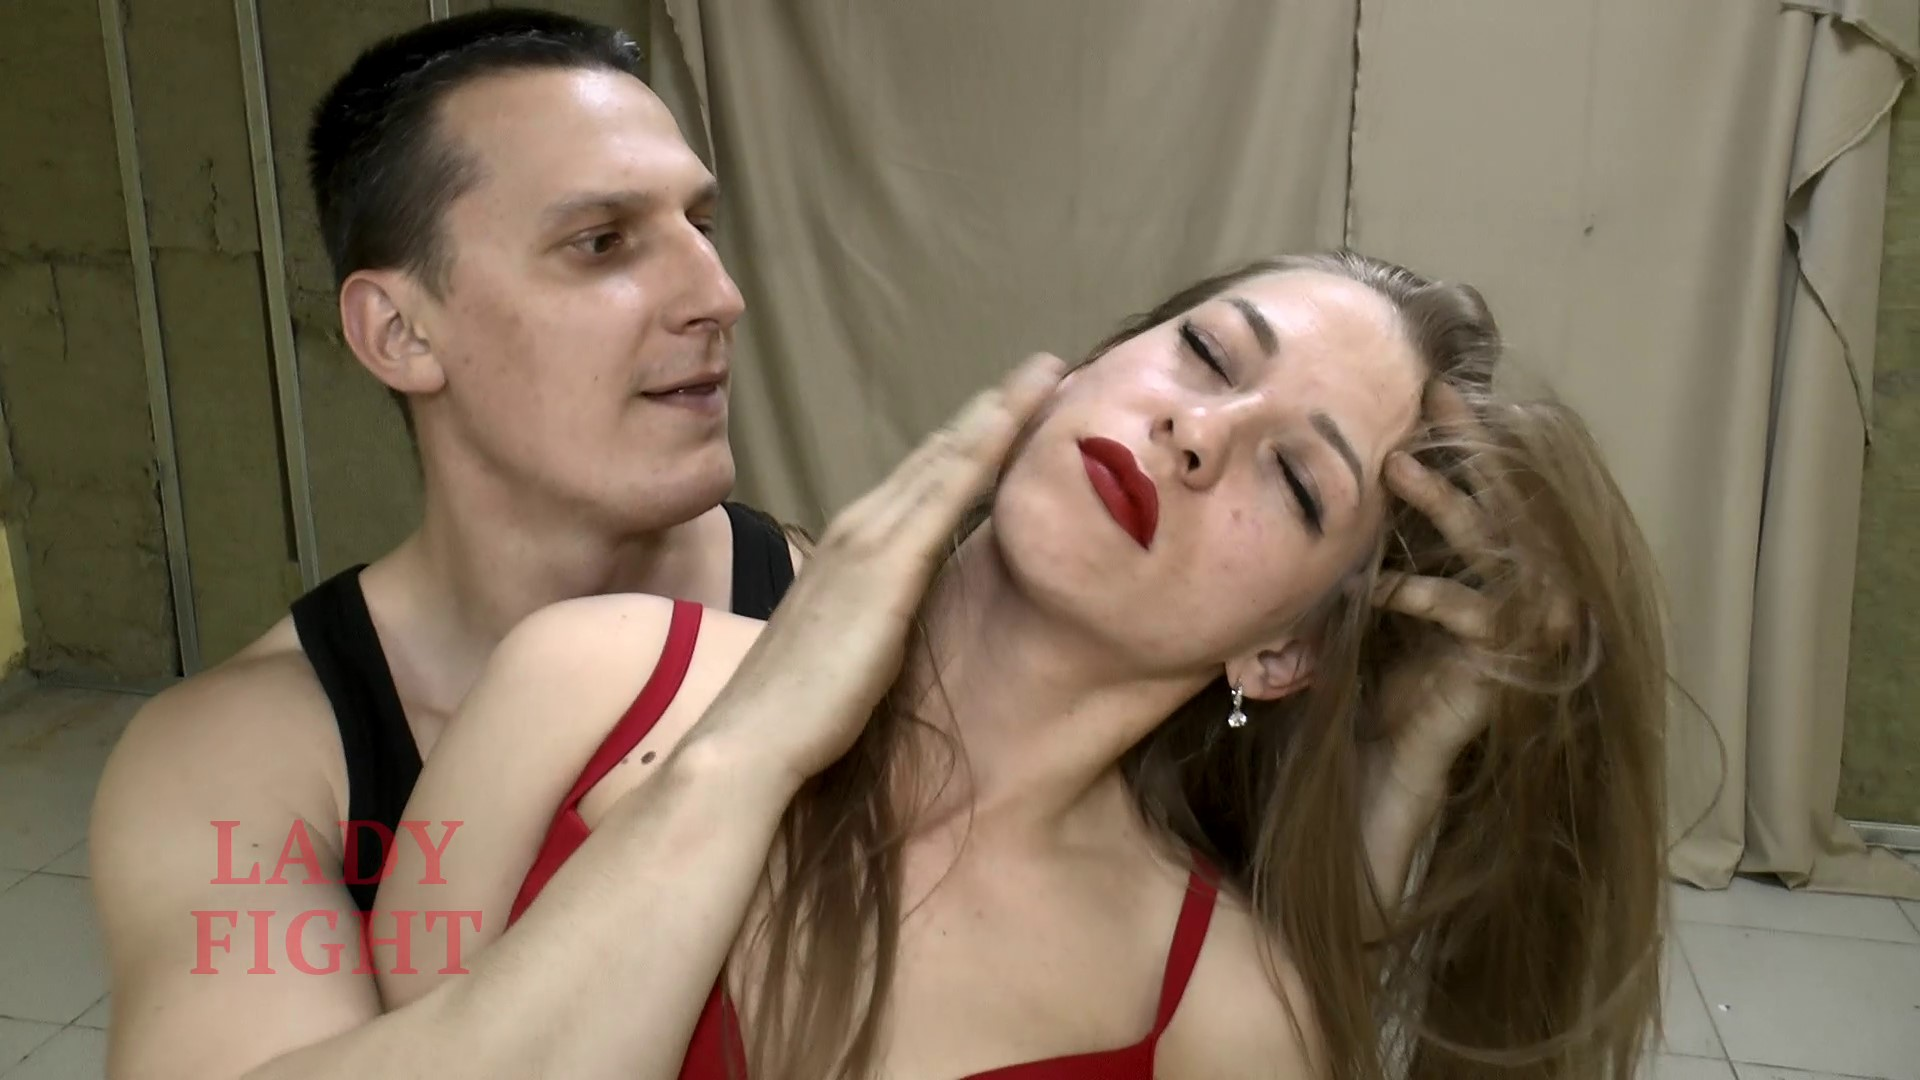 LADYFIGHT-Deadly-Wrestling-For-Lora-118